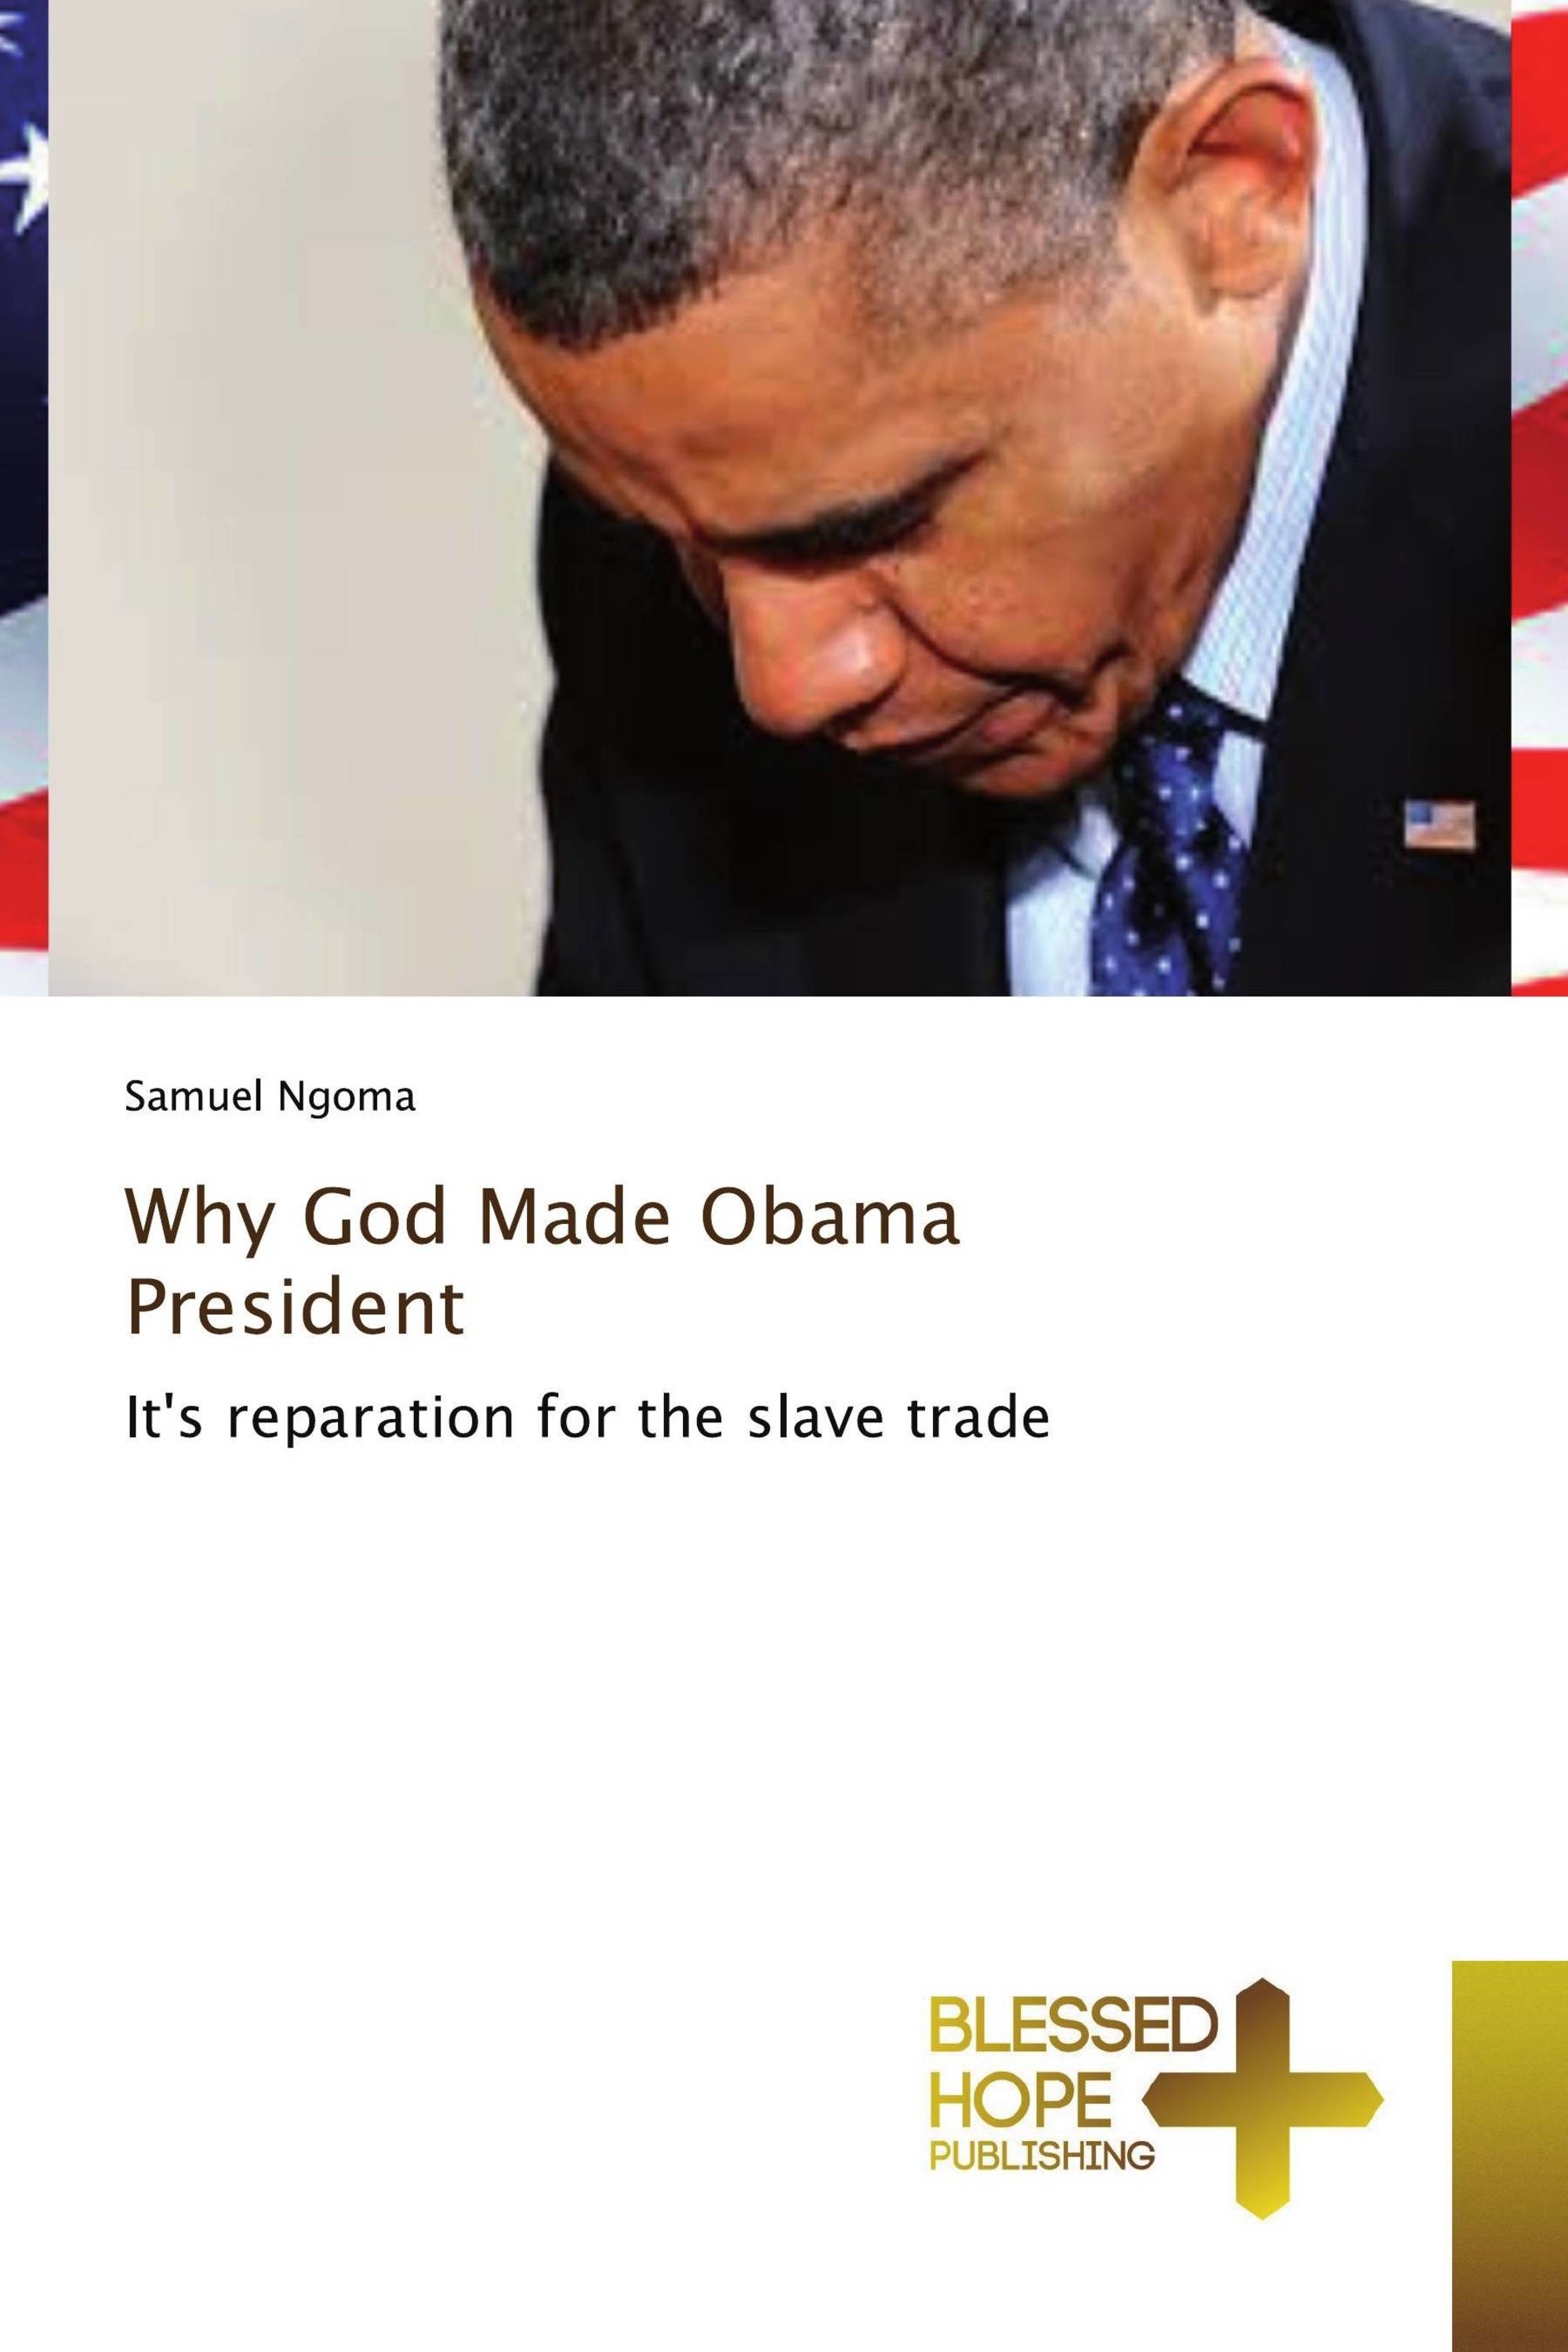 Why God Made Obama President